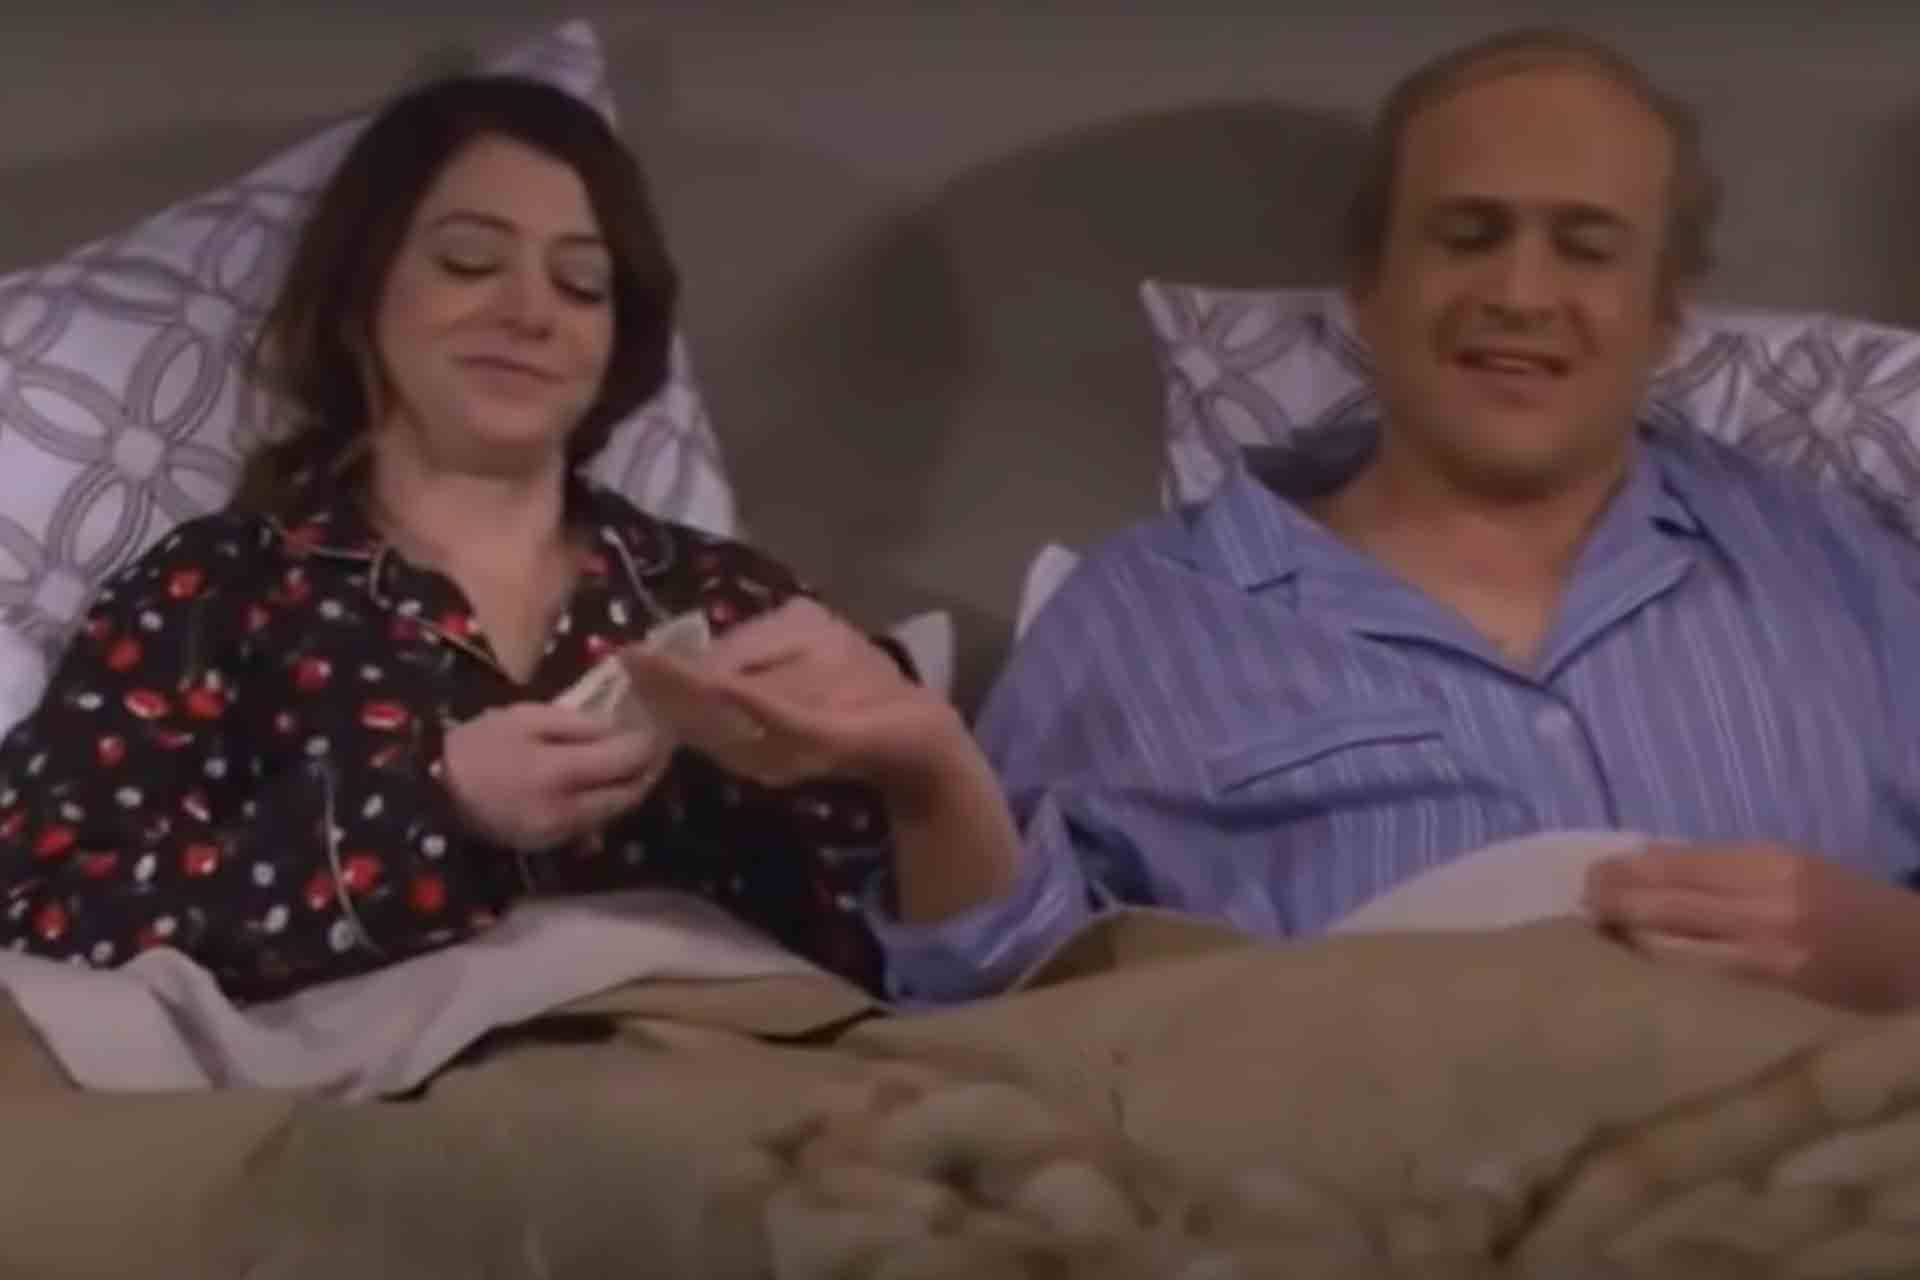 Marshal bets Lily that Ted and Robin would end up together.